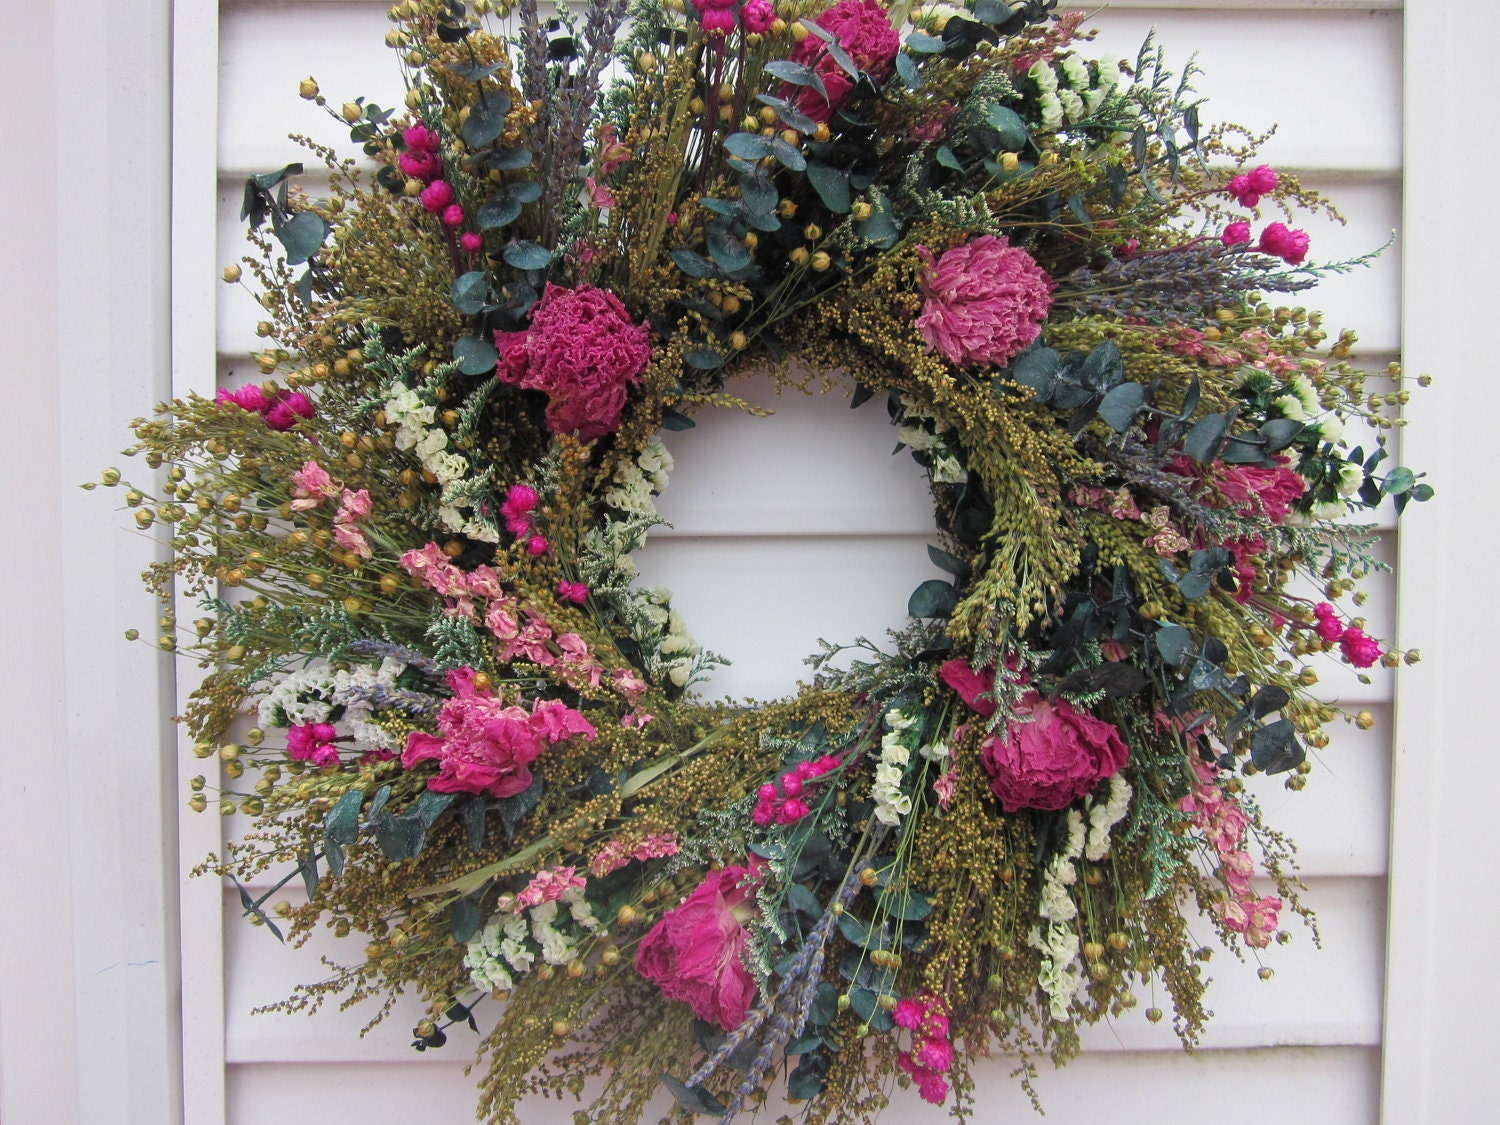 Dried Flower Wreath Fragrant Peony Lavender and other Flowers - NotJustWeeds